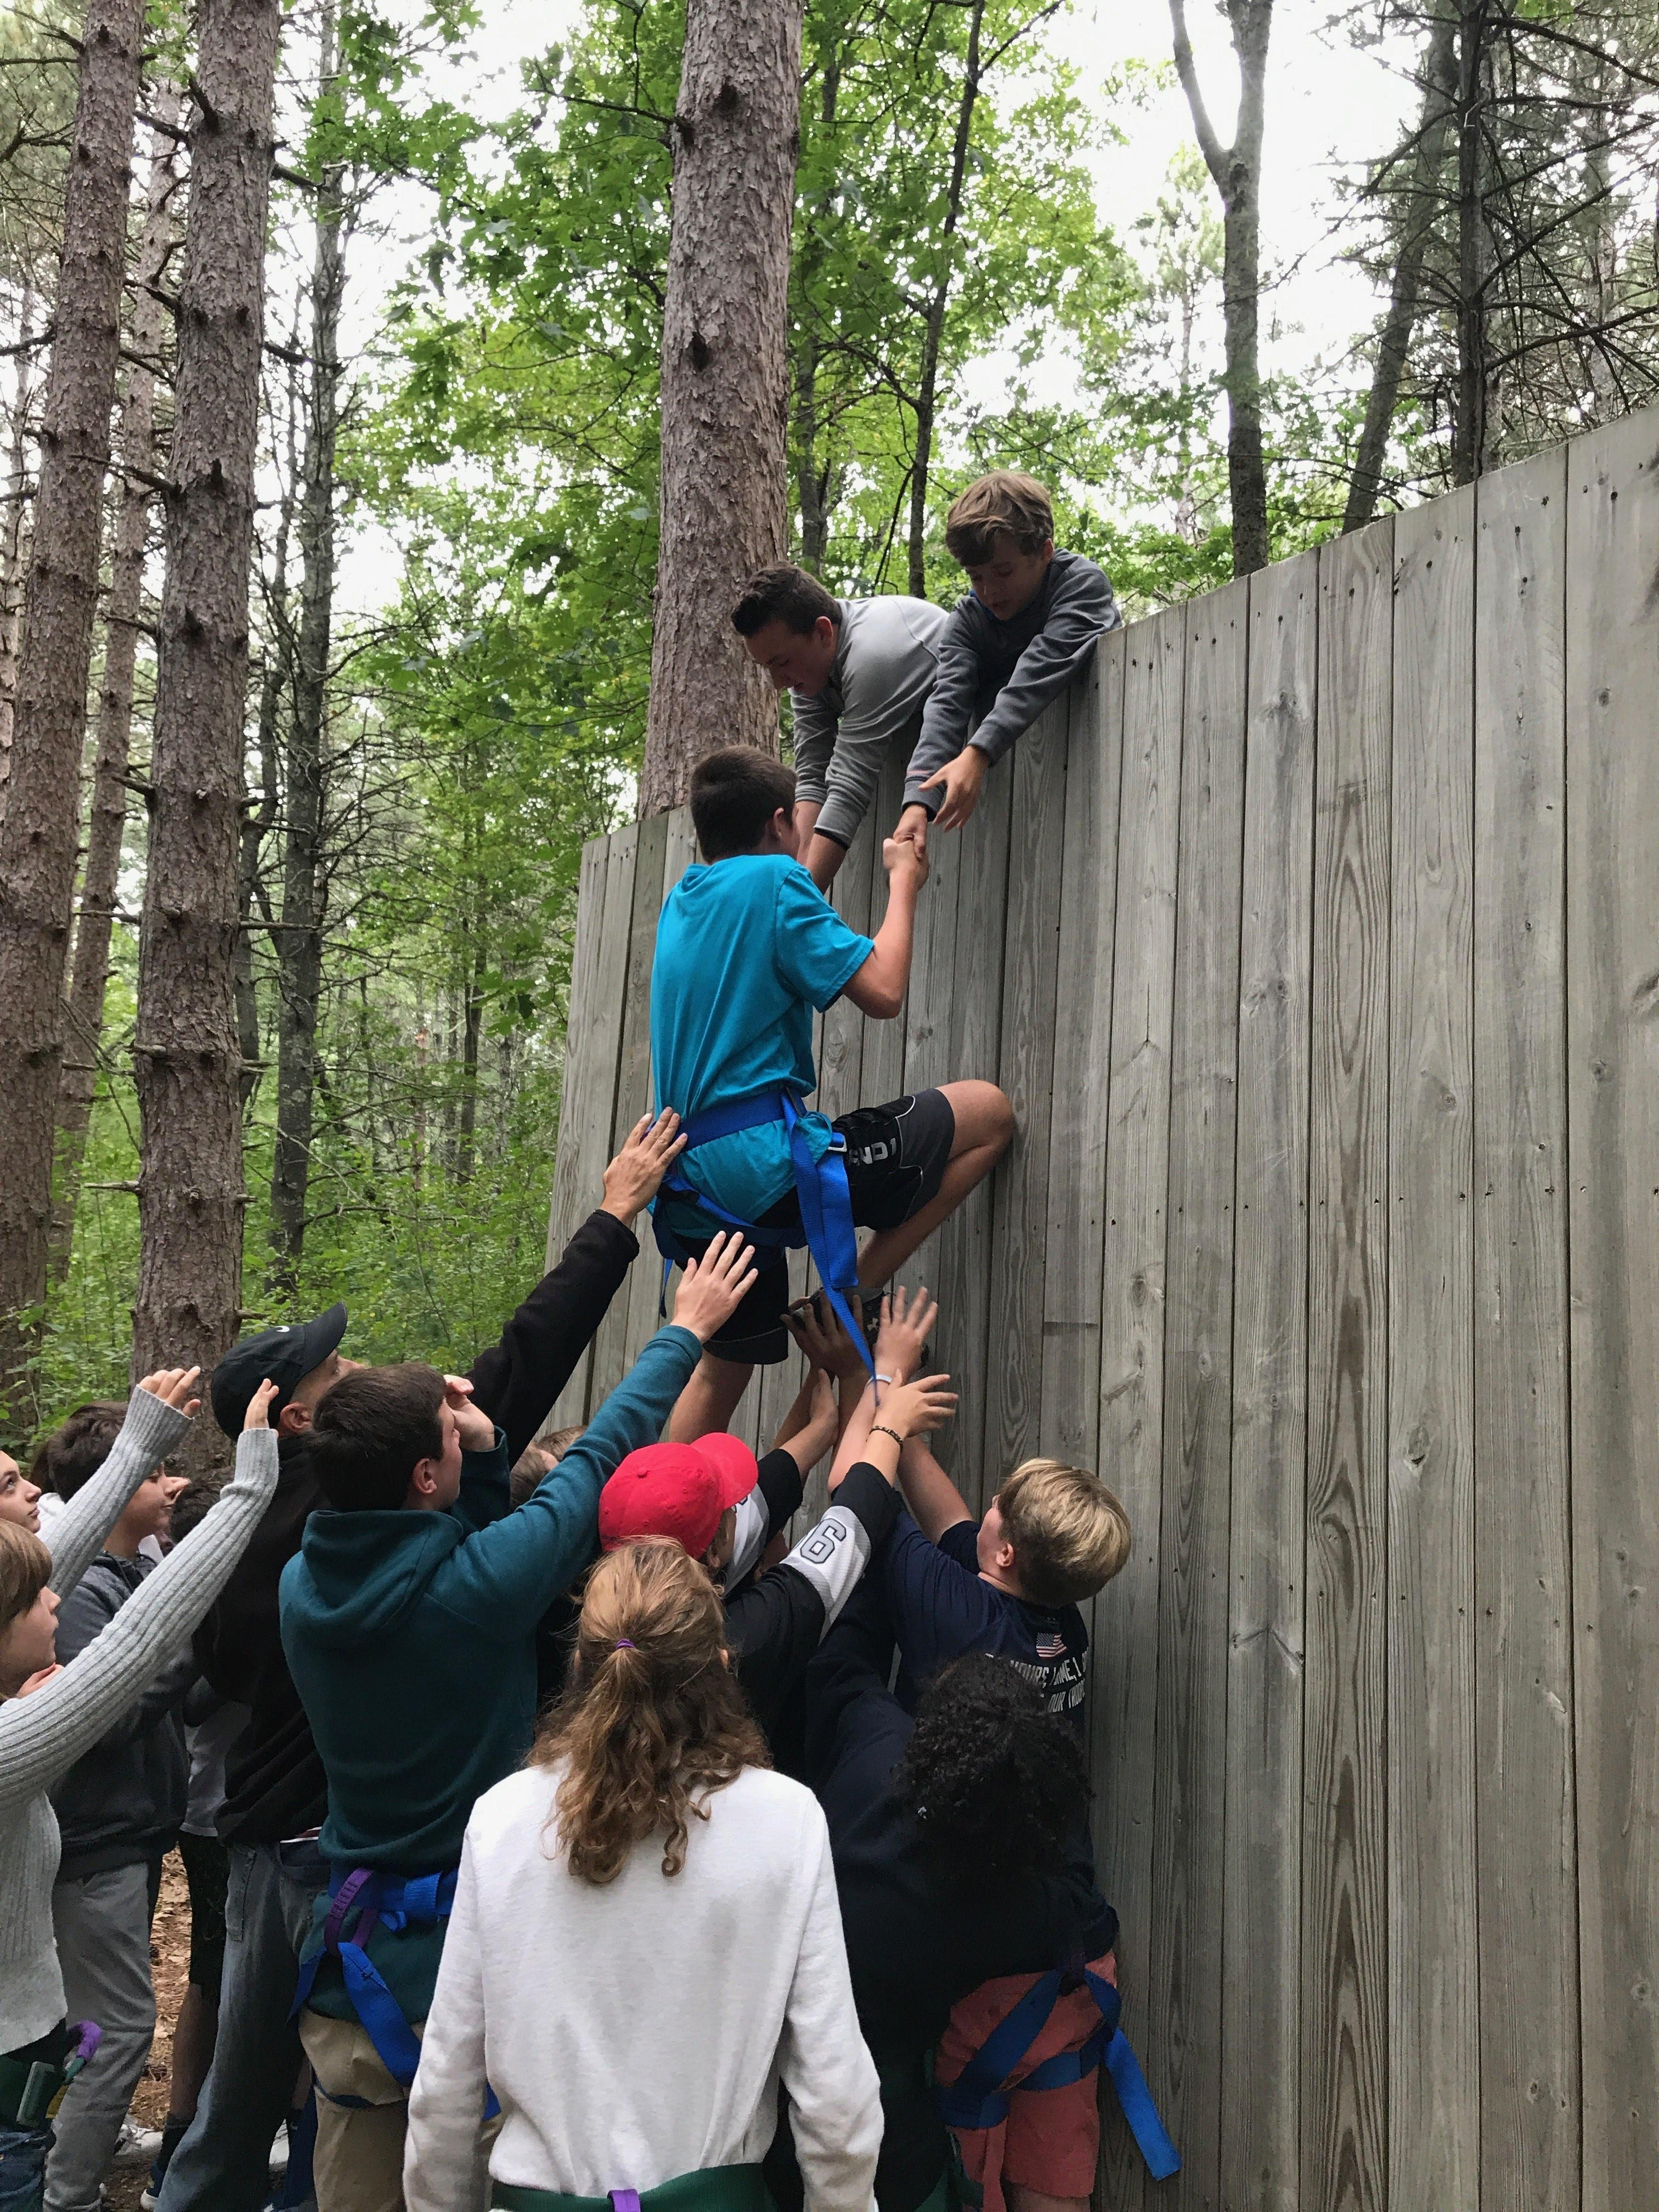 Student climbing the wall in challenge course